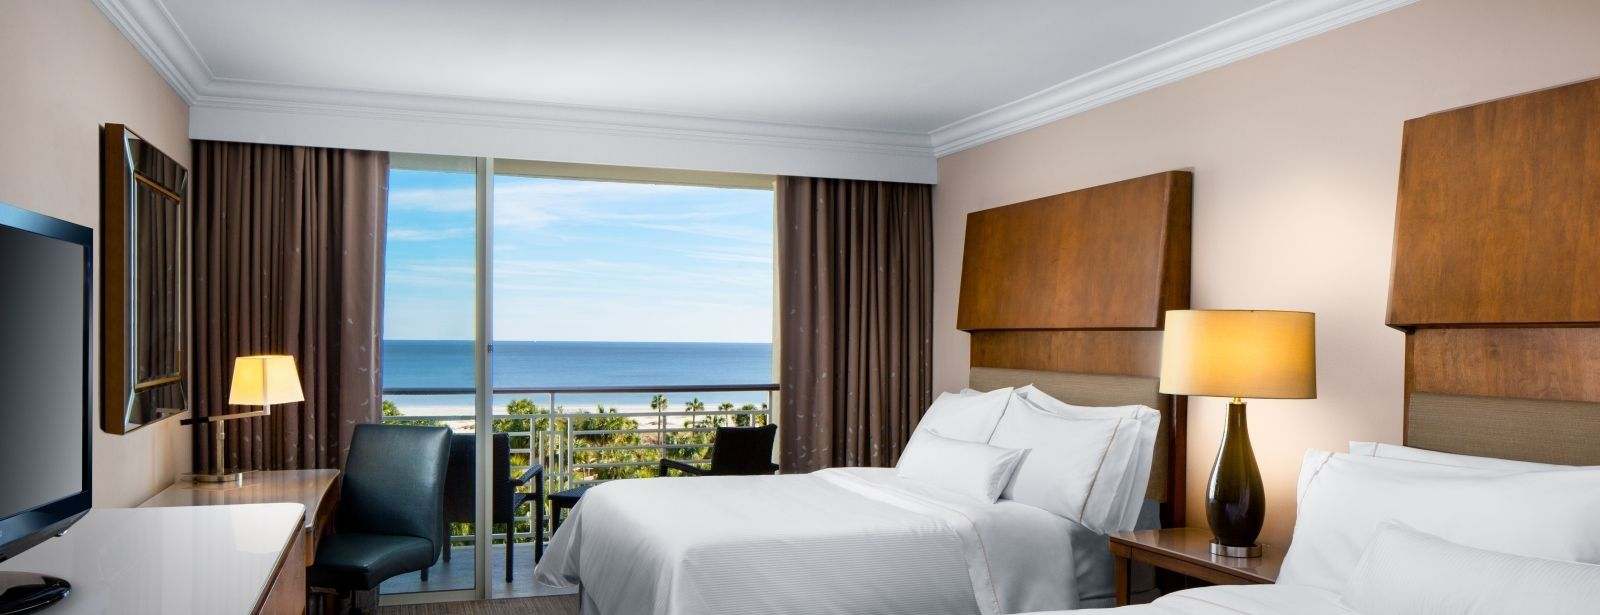 Hilton Head Hotels - The Westin - Grand Deluxe Guestroom